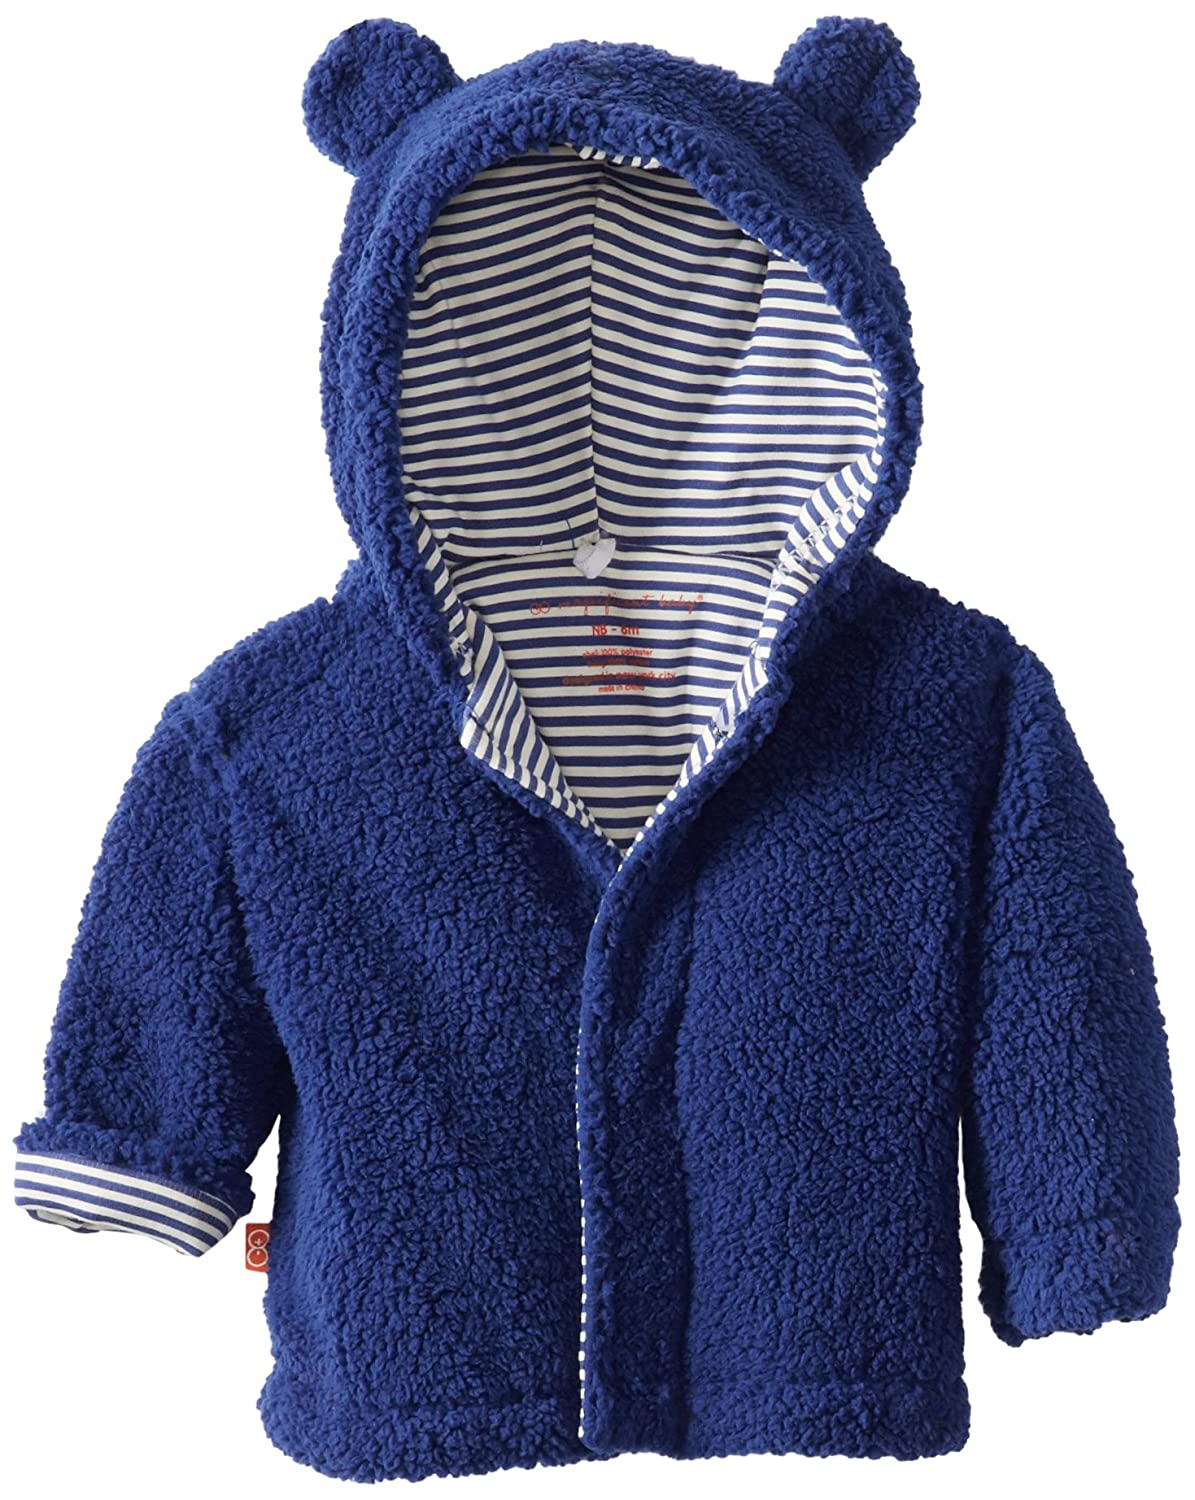 Magnificent Baby Hooded Bear Jacket, 12-18 Months, Mocha 5003U--12-18M